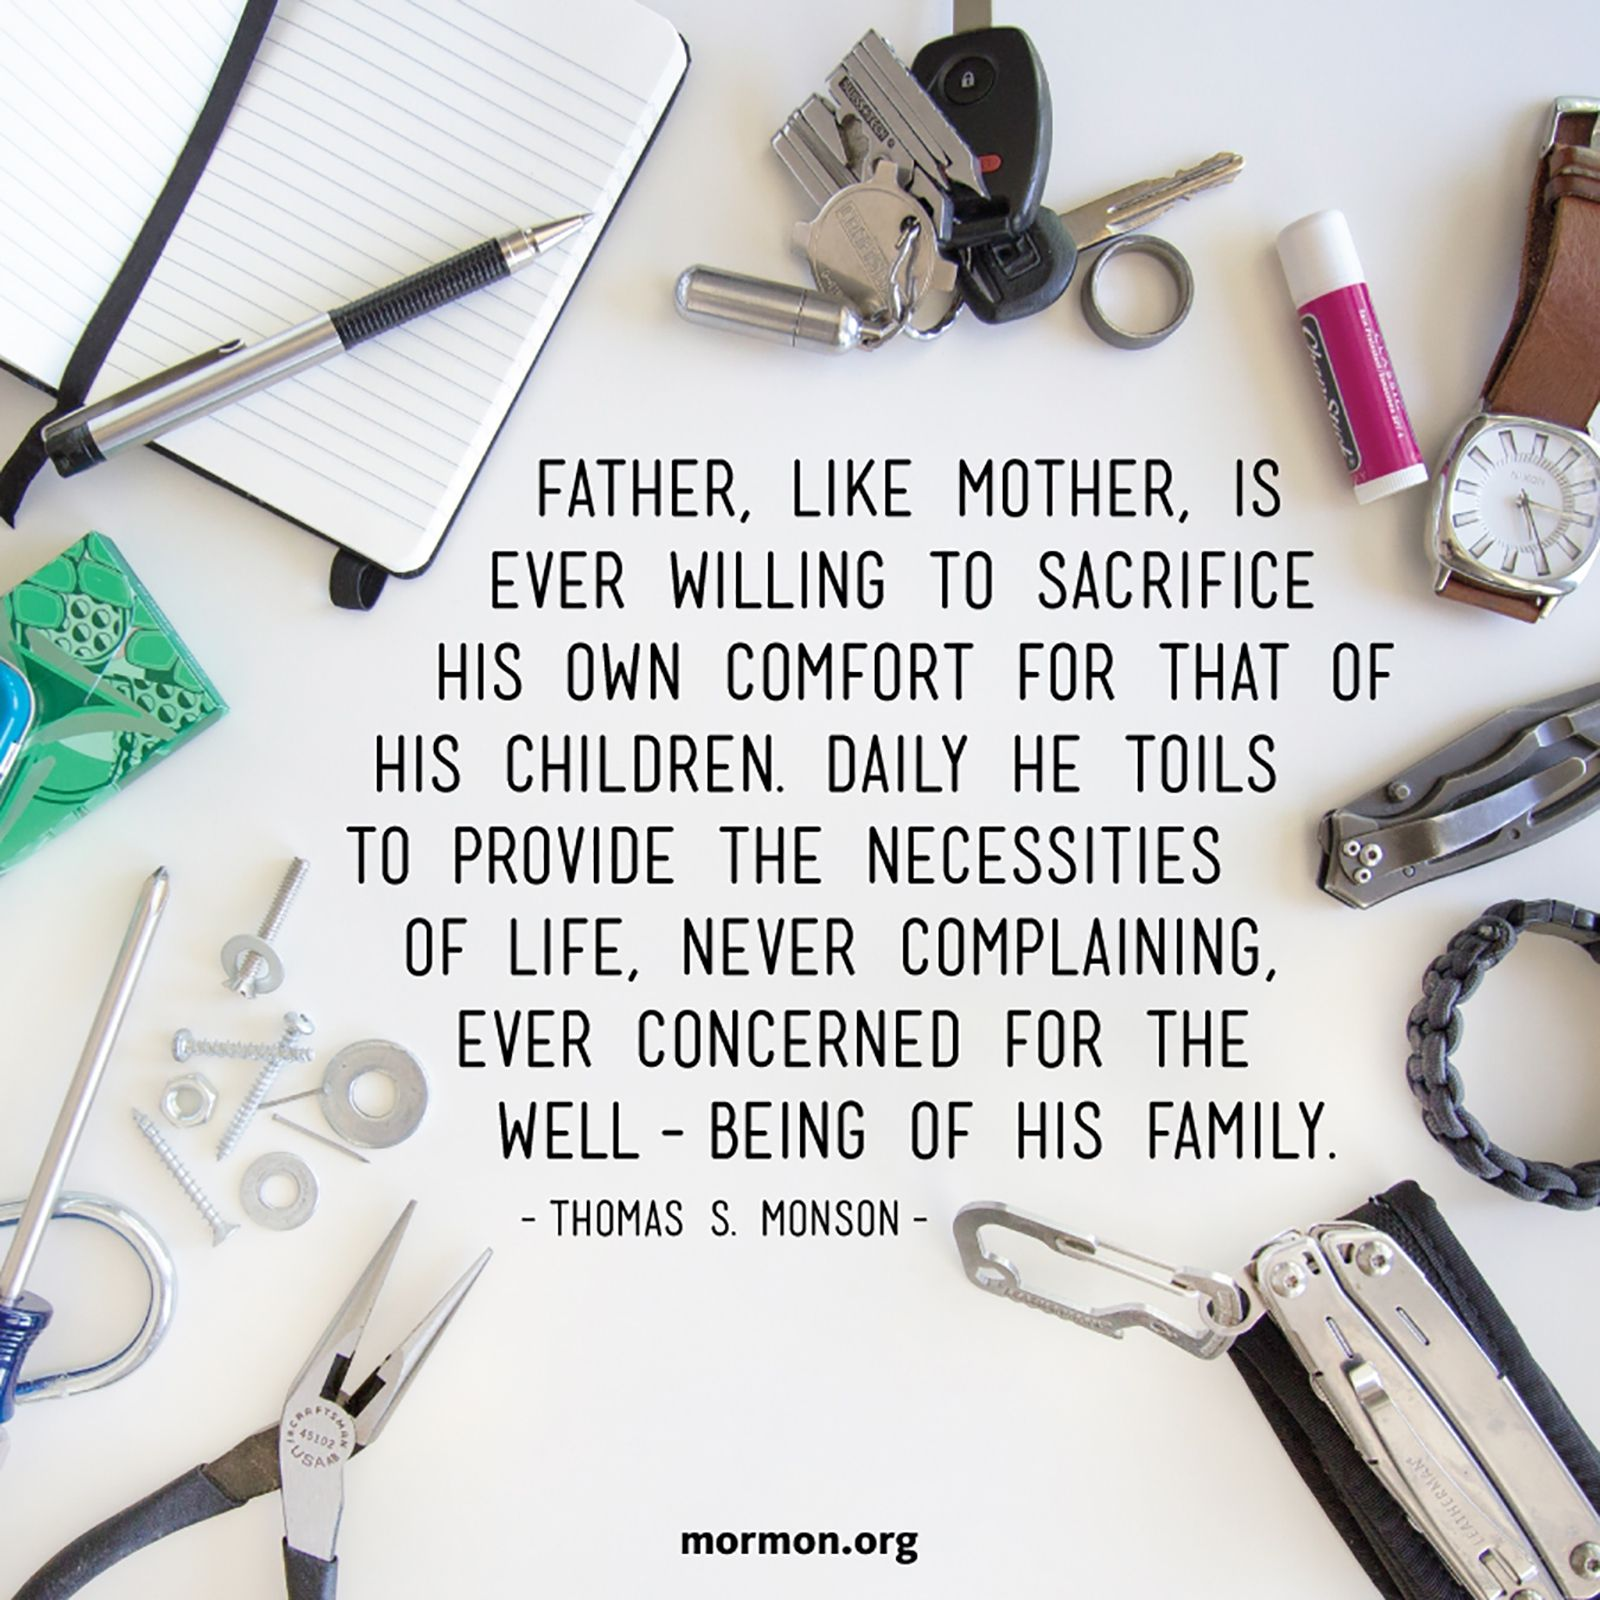 """""""Father, like Mother, is ever willing to sacrifice his own comfort for that of his children. Daily he toils to provide the necessities of life, never complaining, ever concerned for the well-being of his family.""""—President Thomas S. Monson, """"An Attitude of Gratitude"""""""